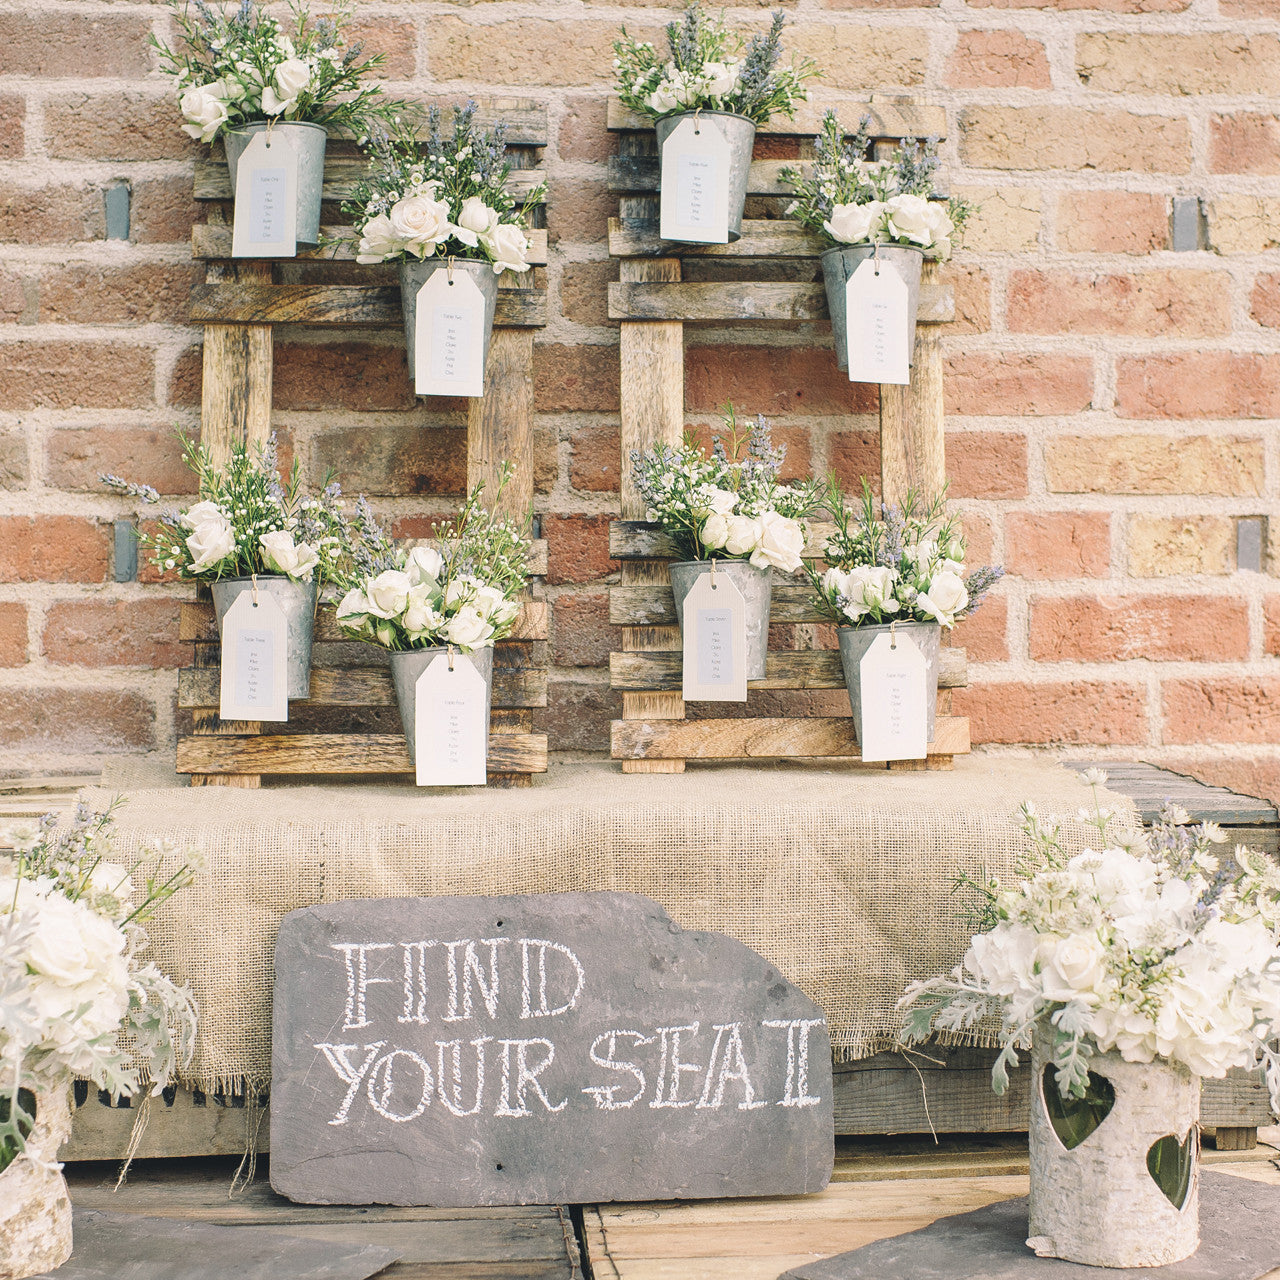 Rustic wedding table plan with flower pots the wedding of my dreams rustic wedding table plan flower pots solutioingenieria Images